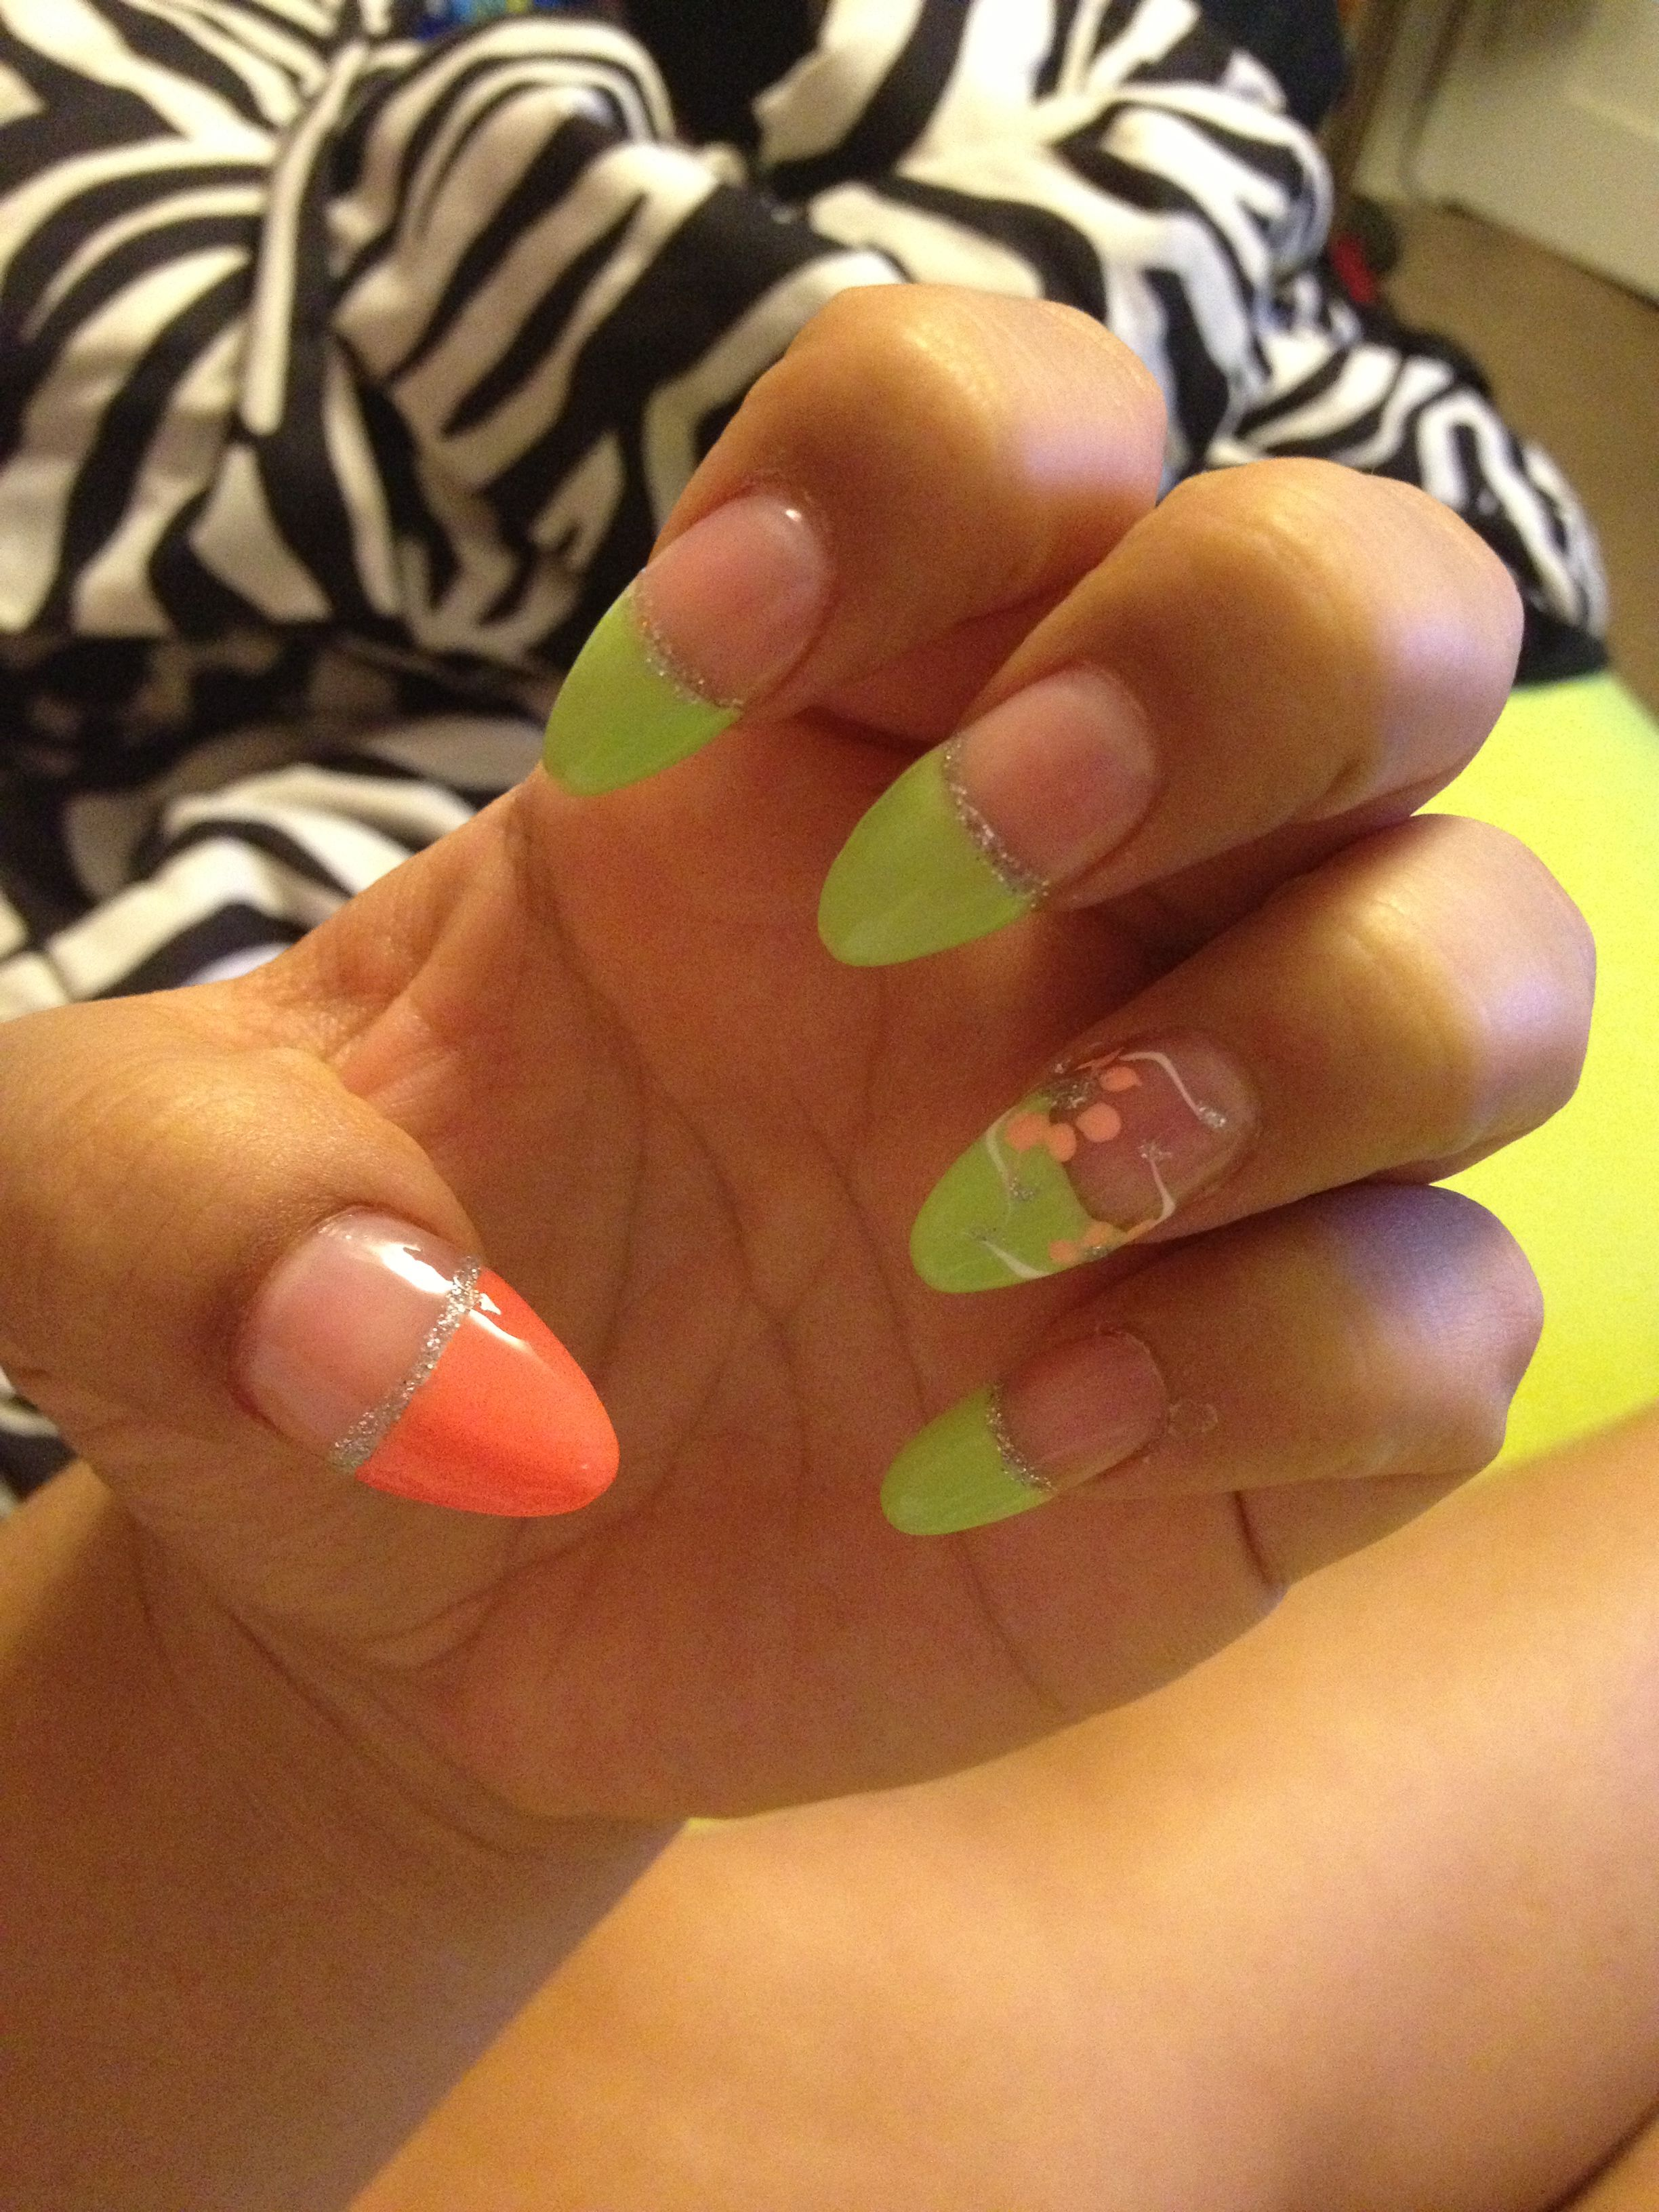 Almond nails with pastel/neon French tips & flower accent design ...